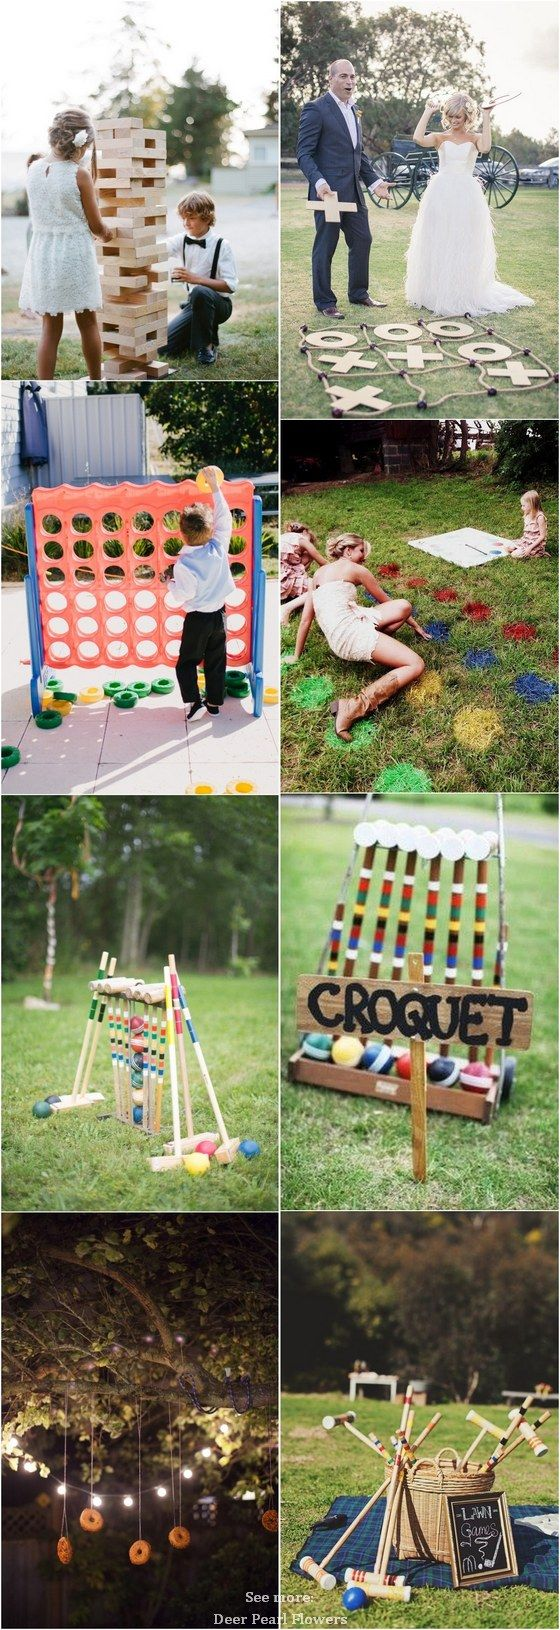 best 25 game ideas ideas on pinterest campfire games getting